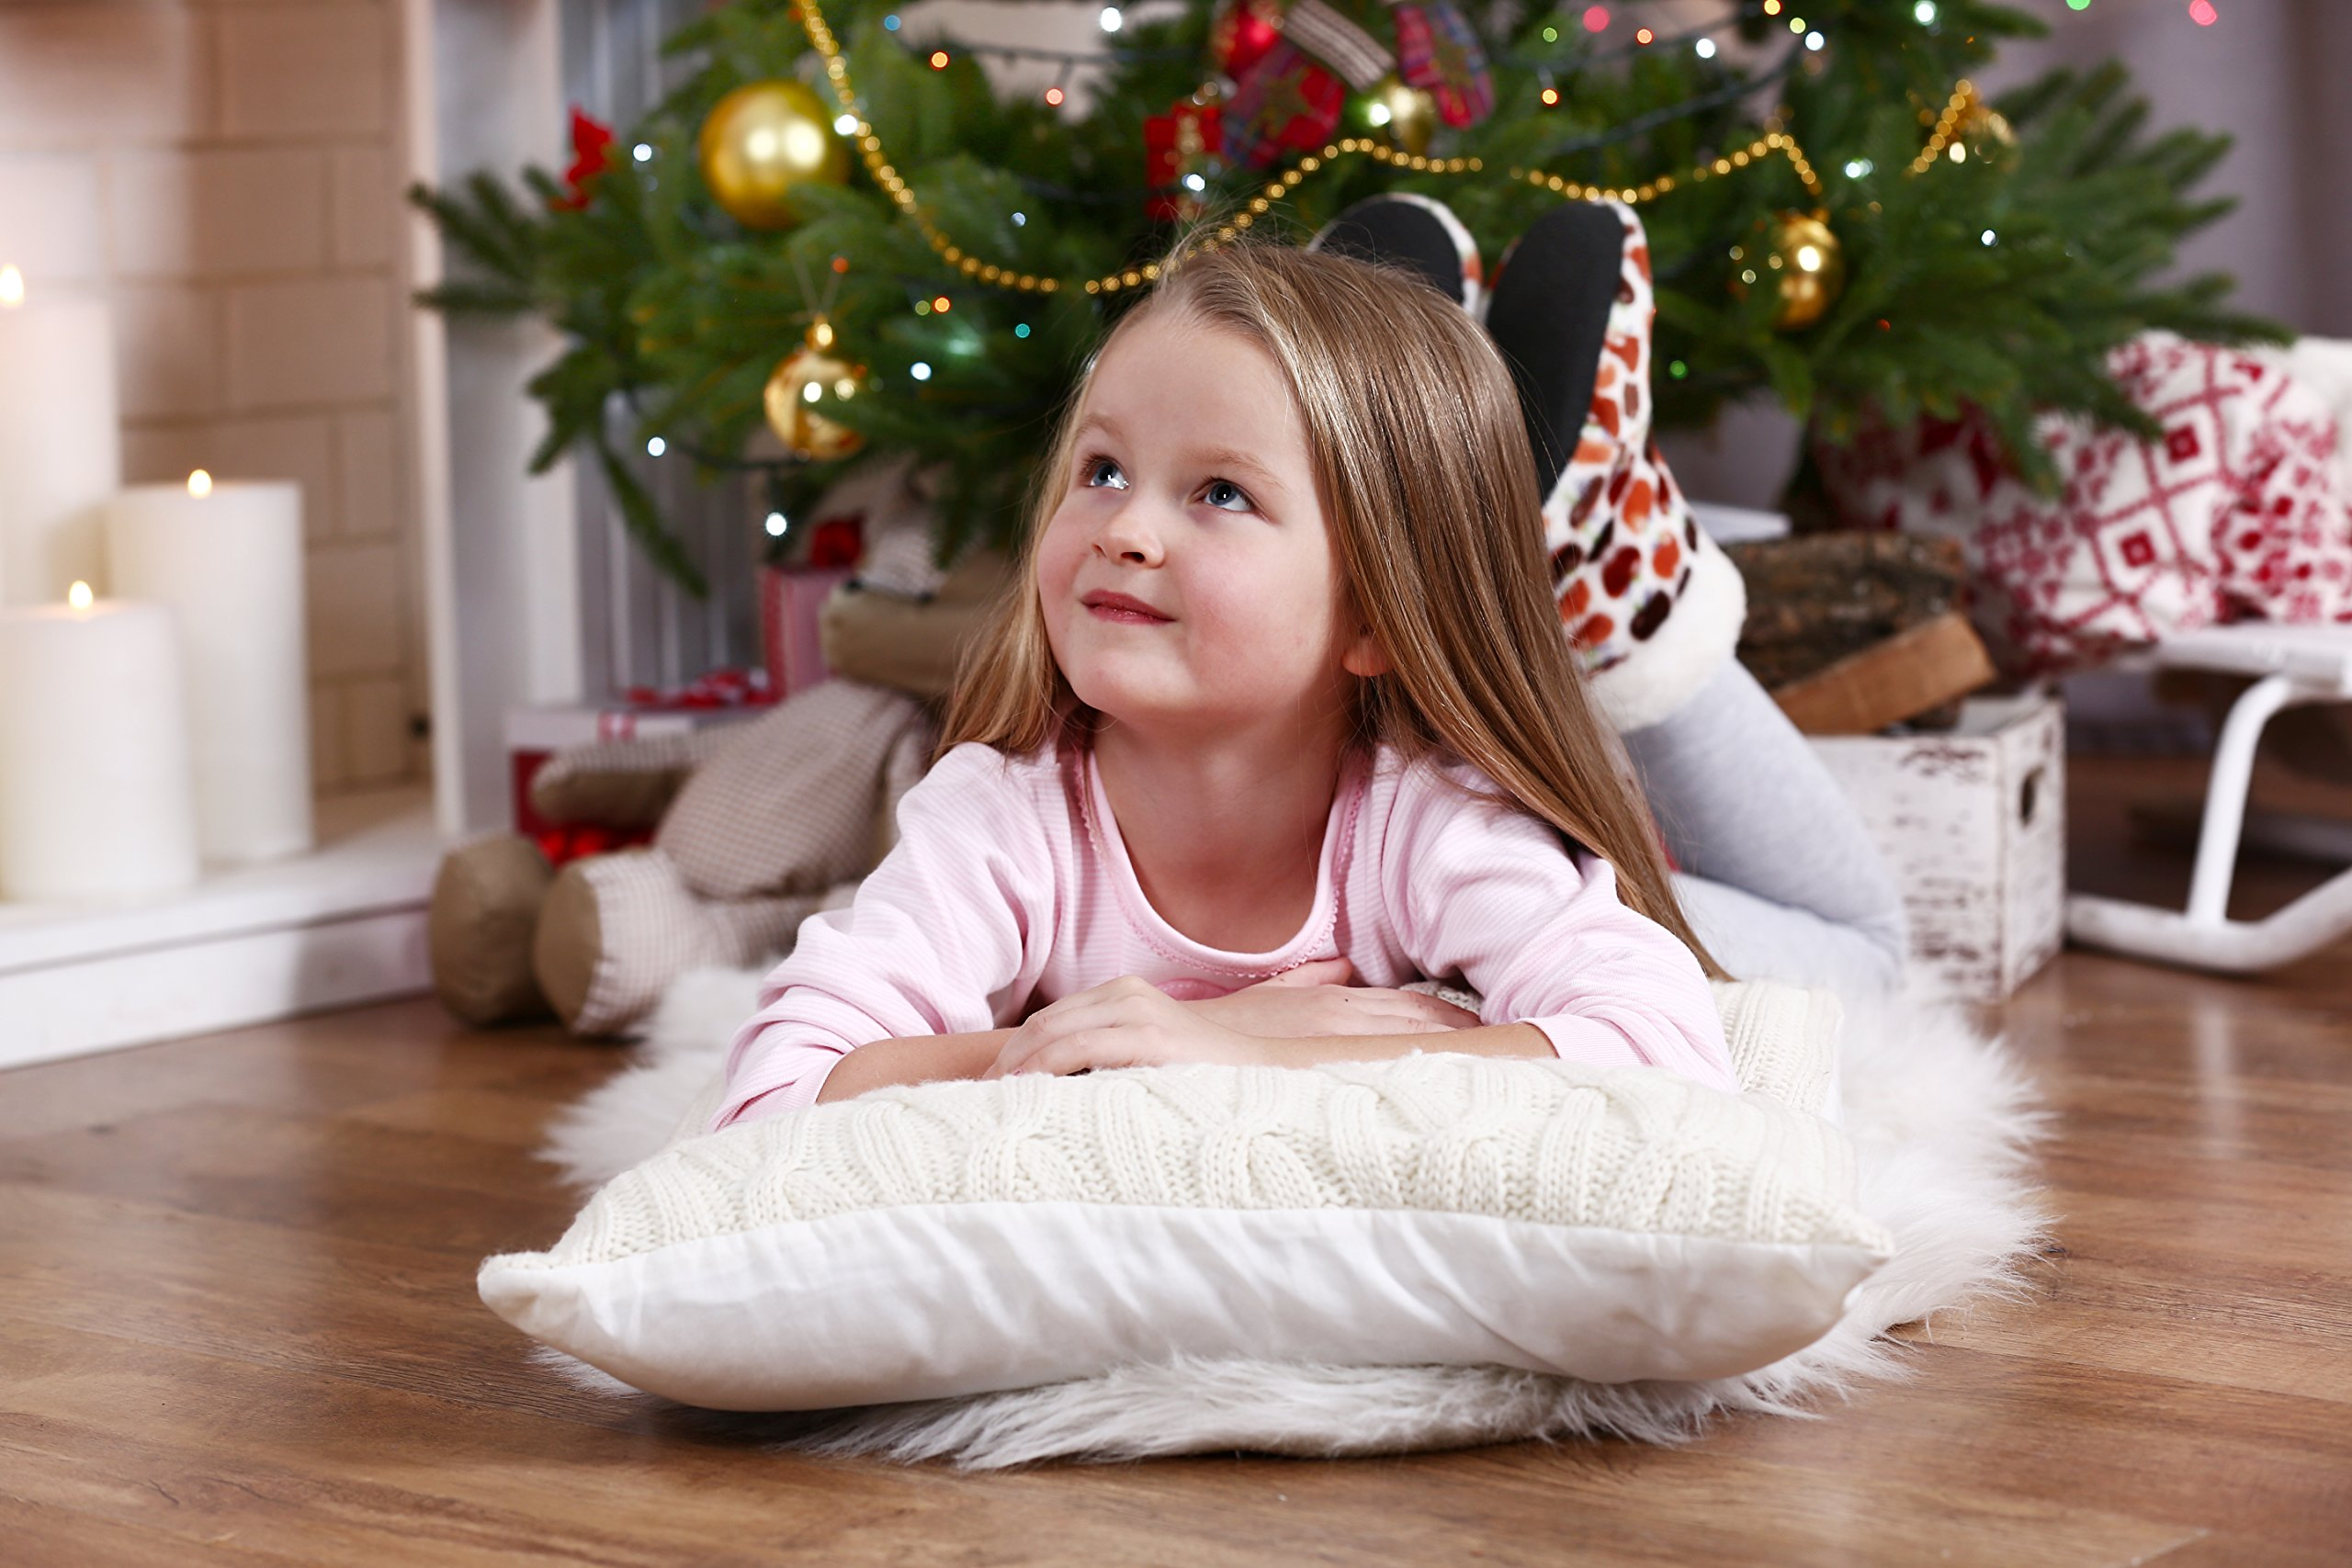 kinder Fluff Toddler/Travel Pillow -No extra Pillowcase/Sham needed-The only Pillow with 300T Cotton and Cluster fiber fill- Hypoallergenic and Machine washable by kinder Fluff (Image #6)